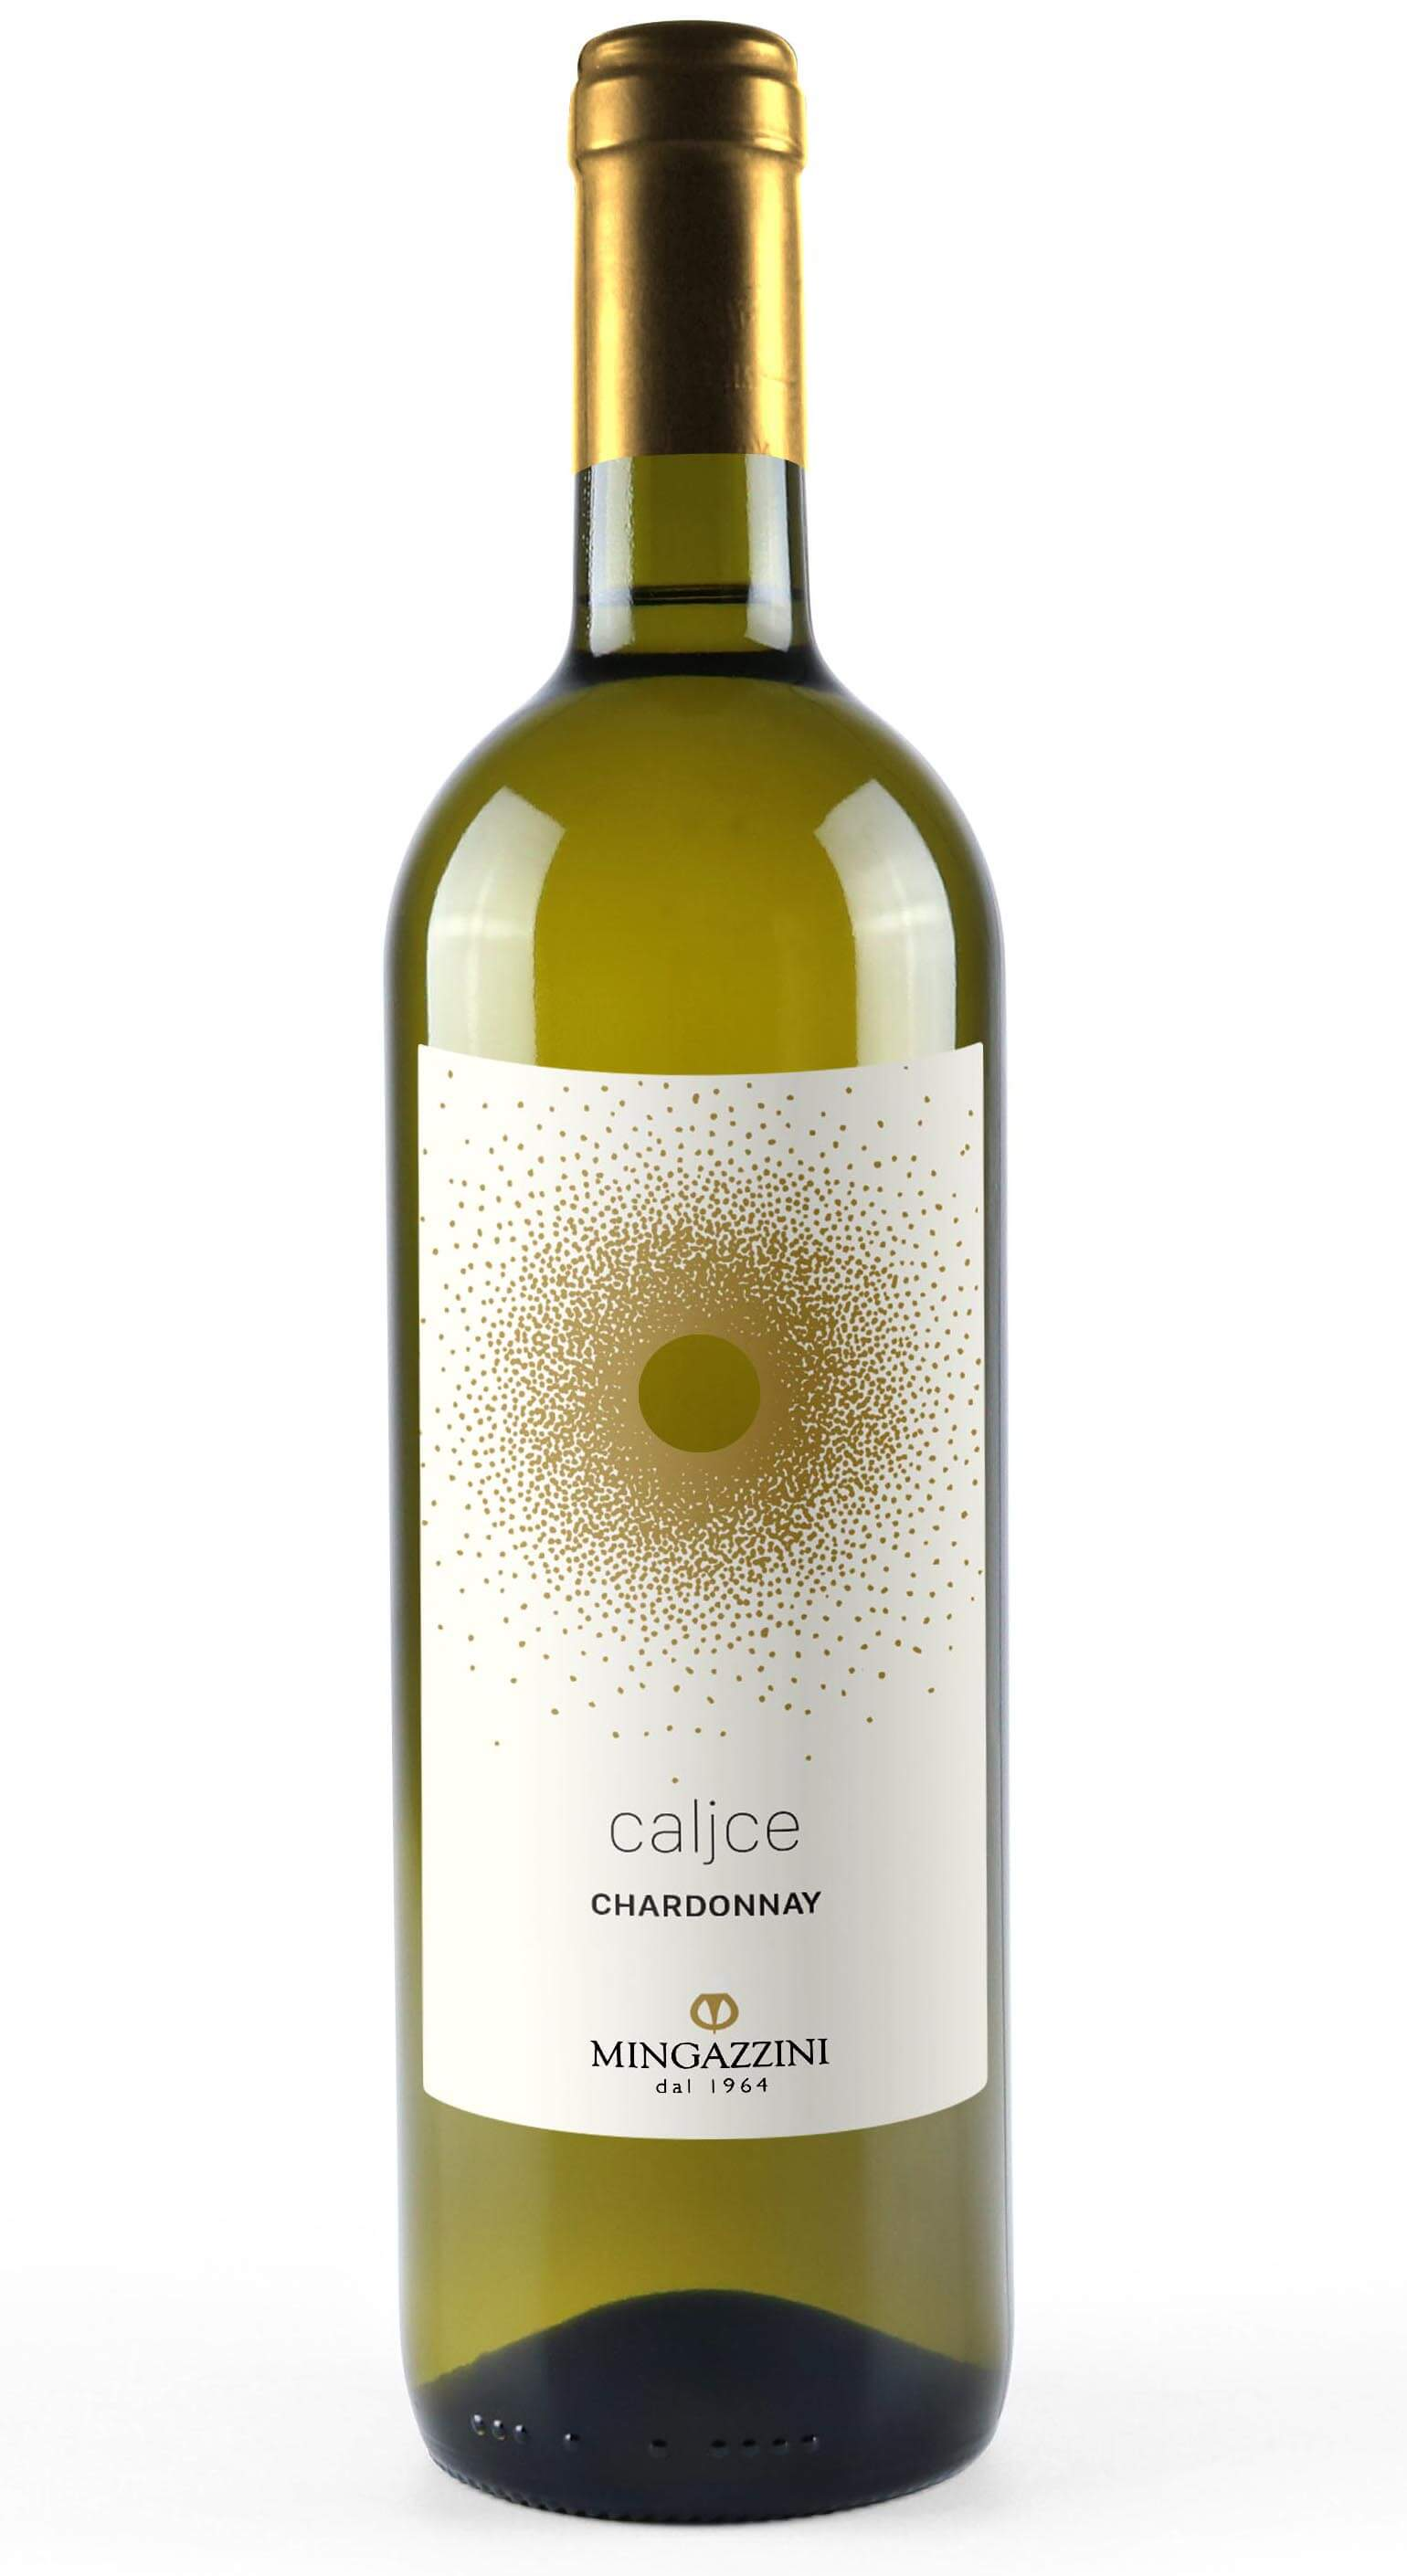 Caljce Chardonnay Rubicone IGT ricette